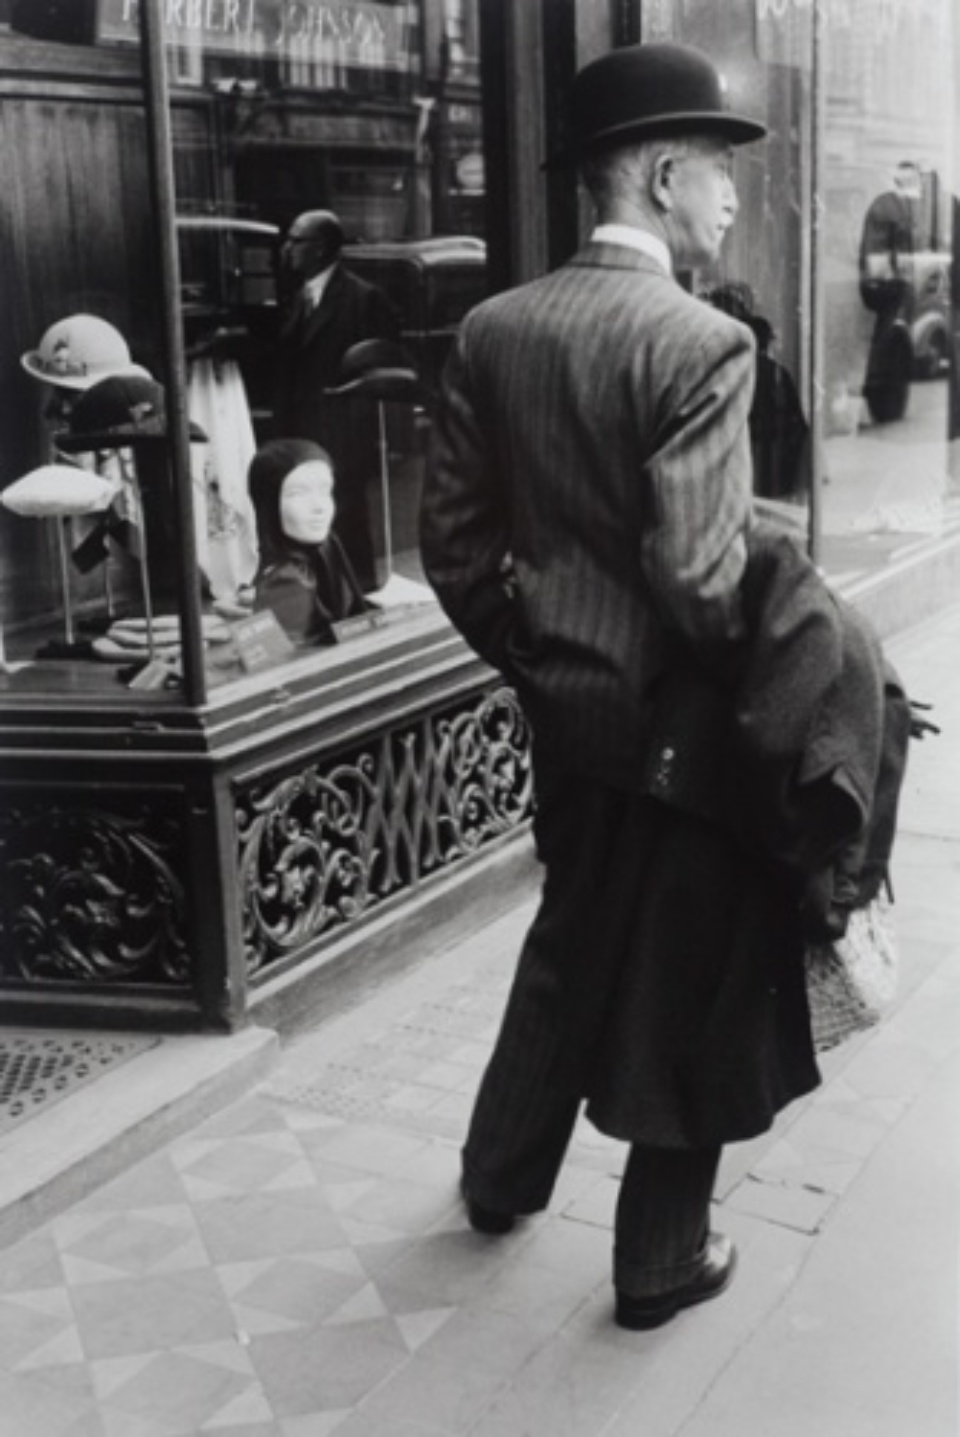 Inge Morath: Bond Street, London Great Britain, 1953 Gelatin siver print, printed 2008 Embossed on recto Estate stamp 50 x 40 cm